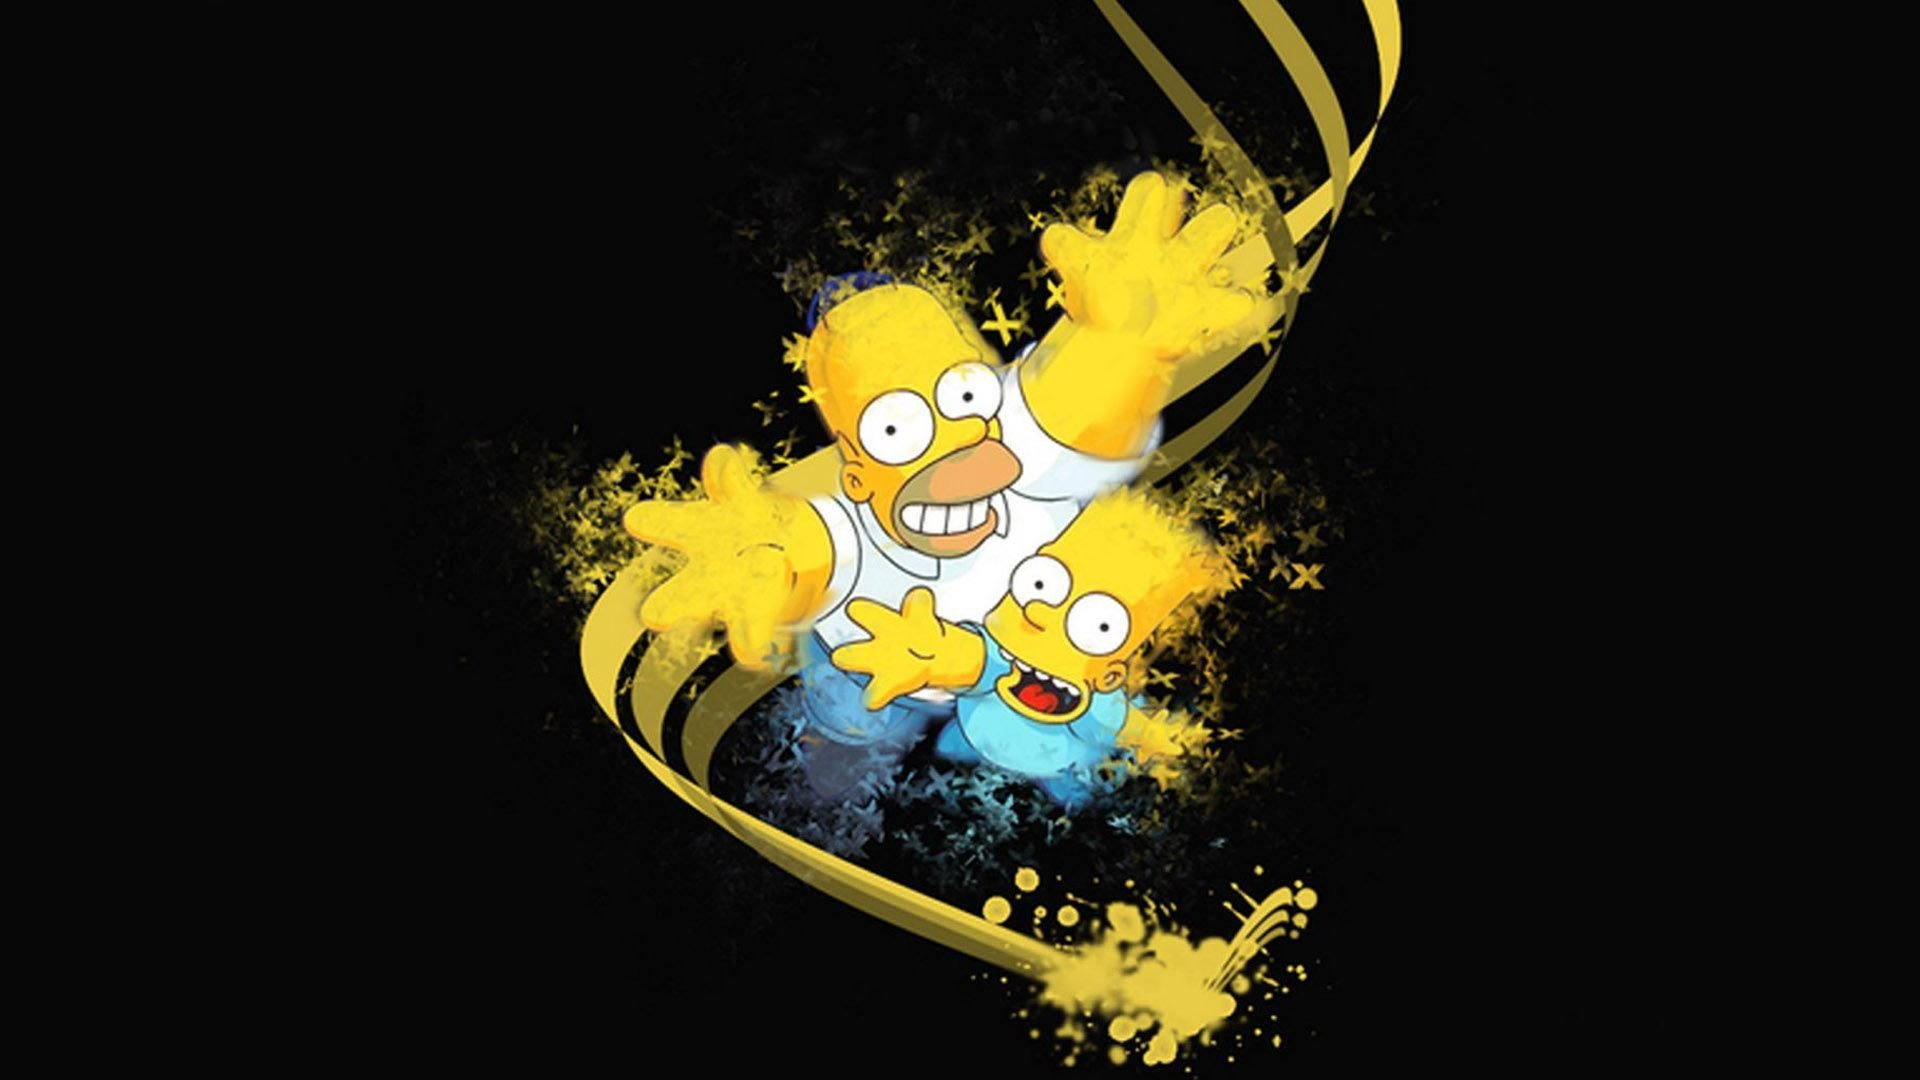 Bart Simpson HD Backgrounds For 1920x1080 Full 1080p Desktop